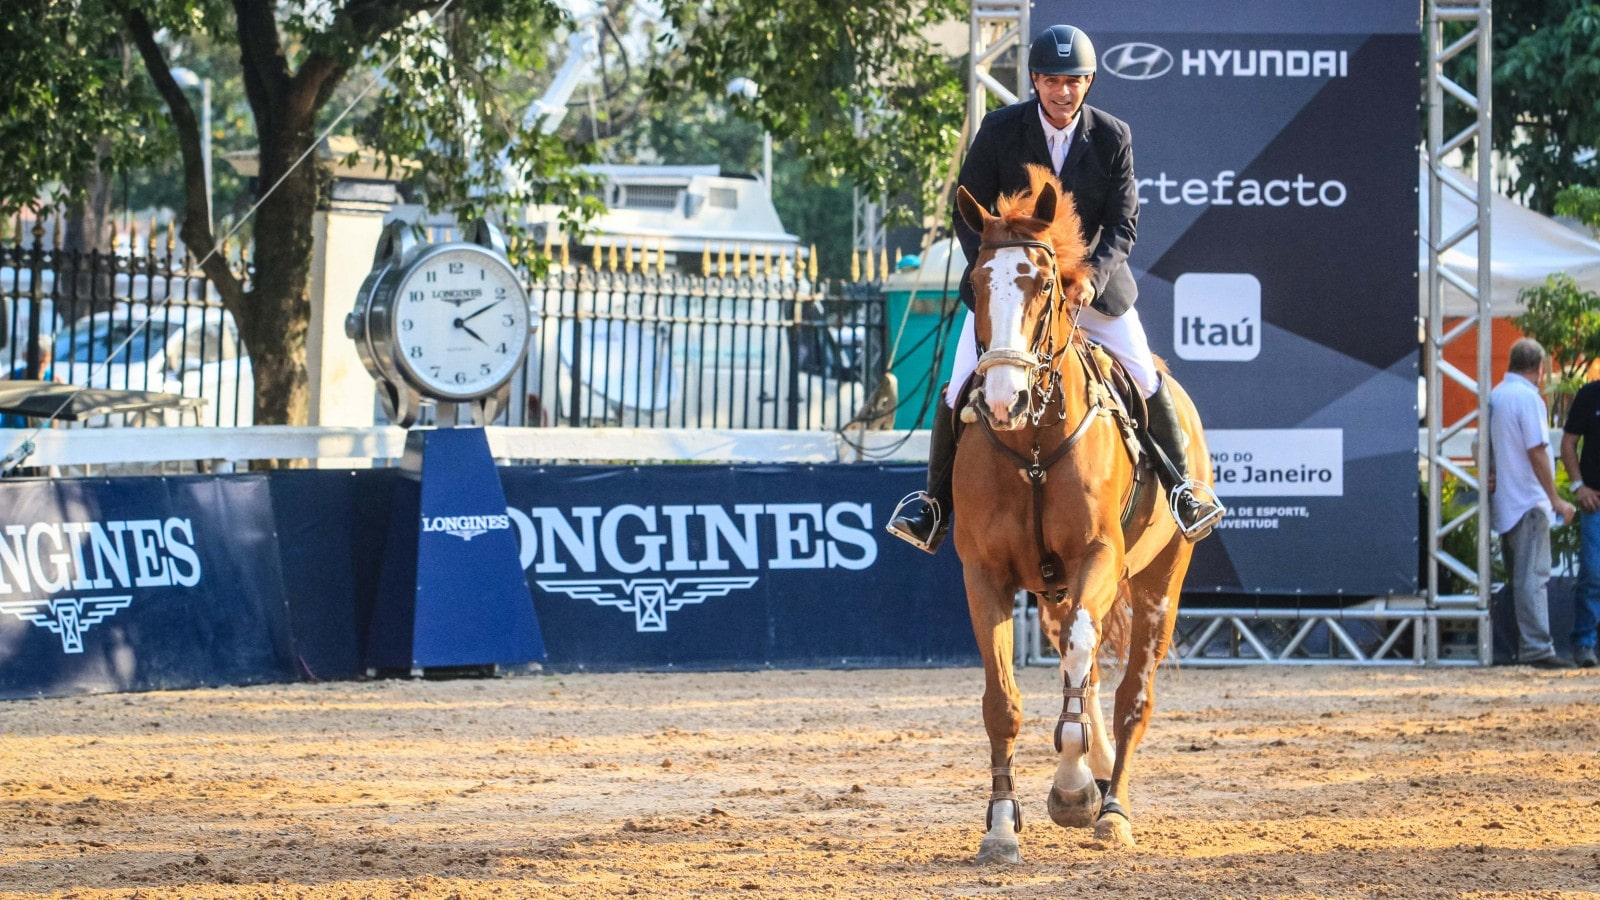 Pedro Paulo Luz Lacerda claimed the Longines Grand Prix at the Longines Rio Equestrian Festival